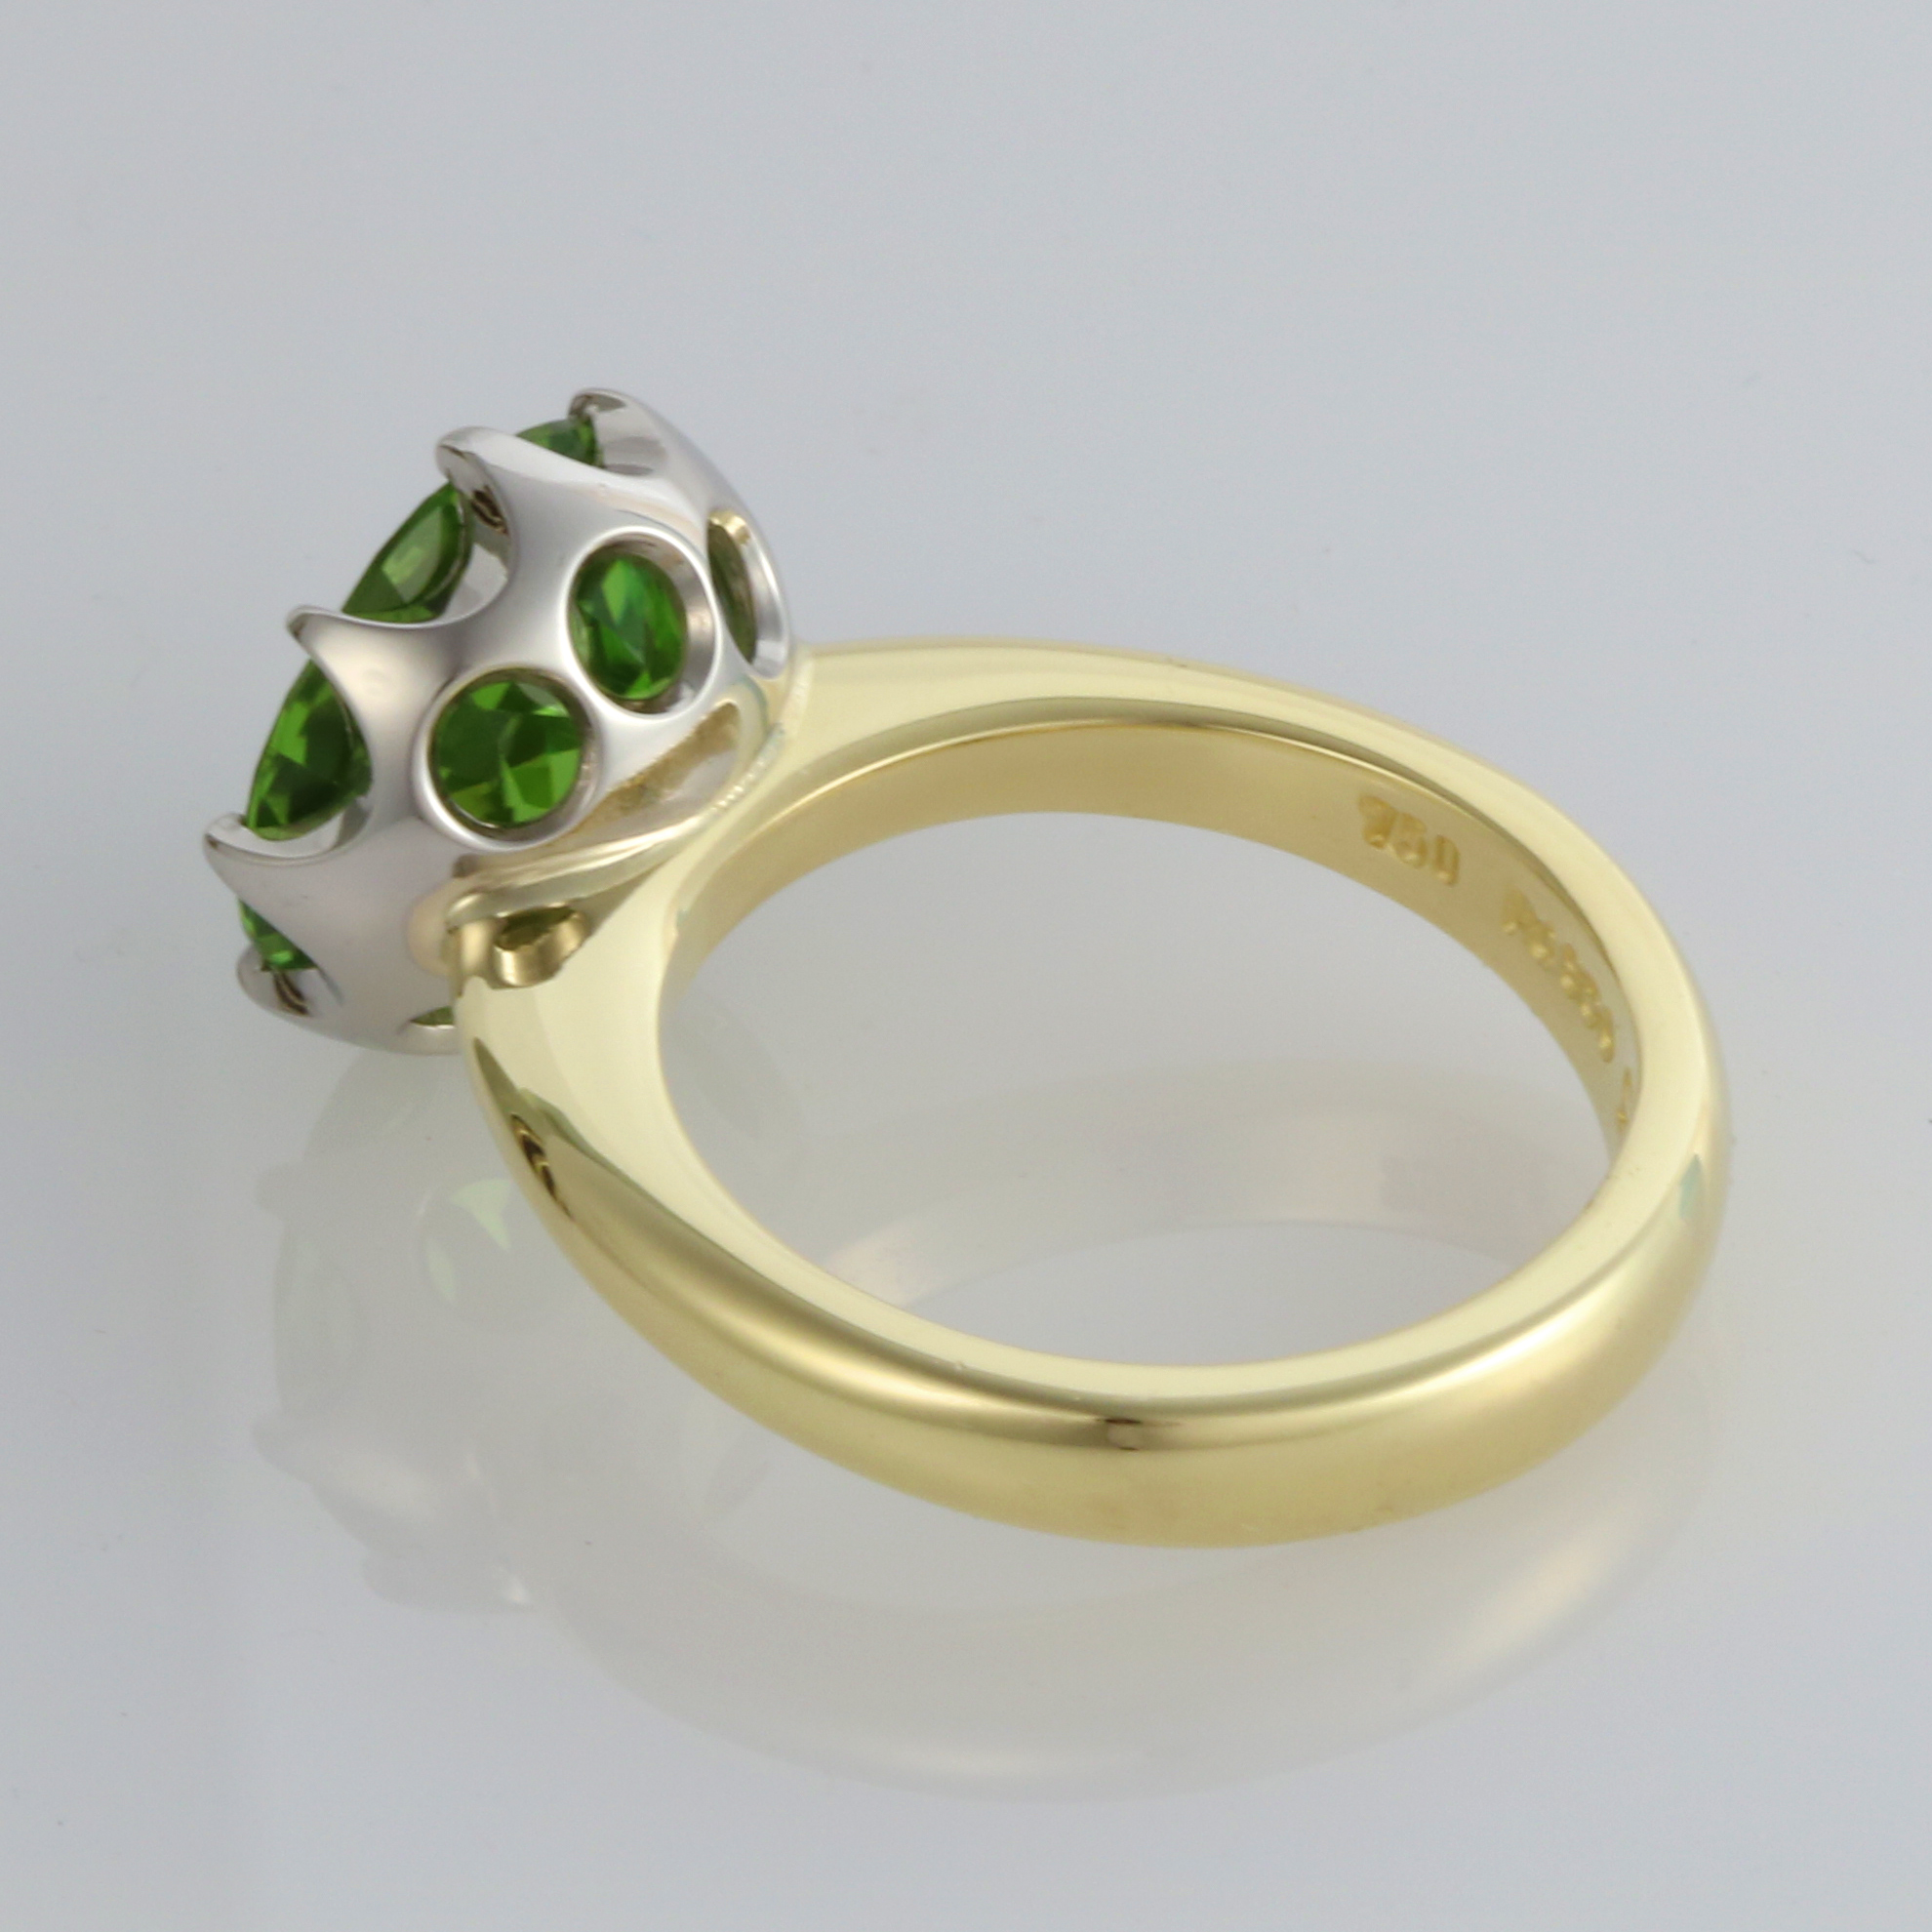 Handmade 18ct green gold and '8 claw' Palladium set Peridot Engagement ring